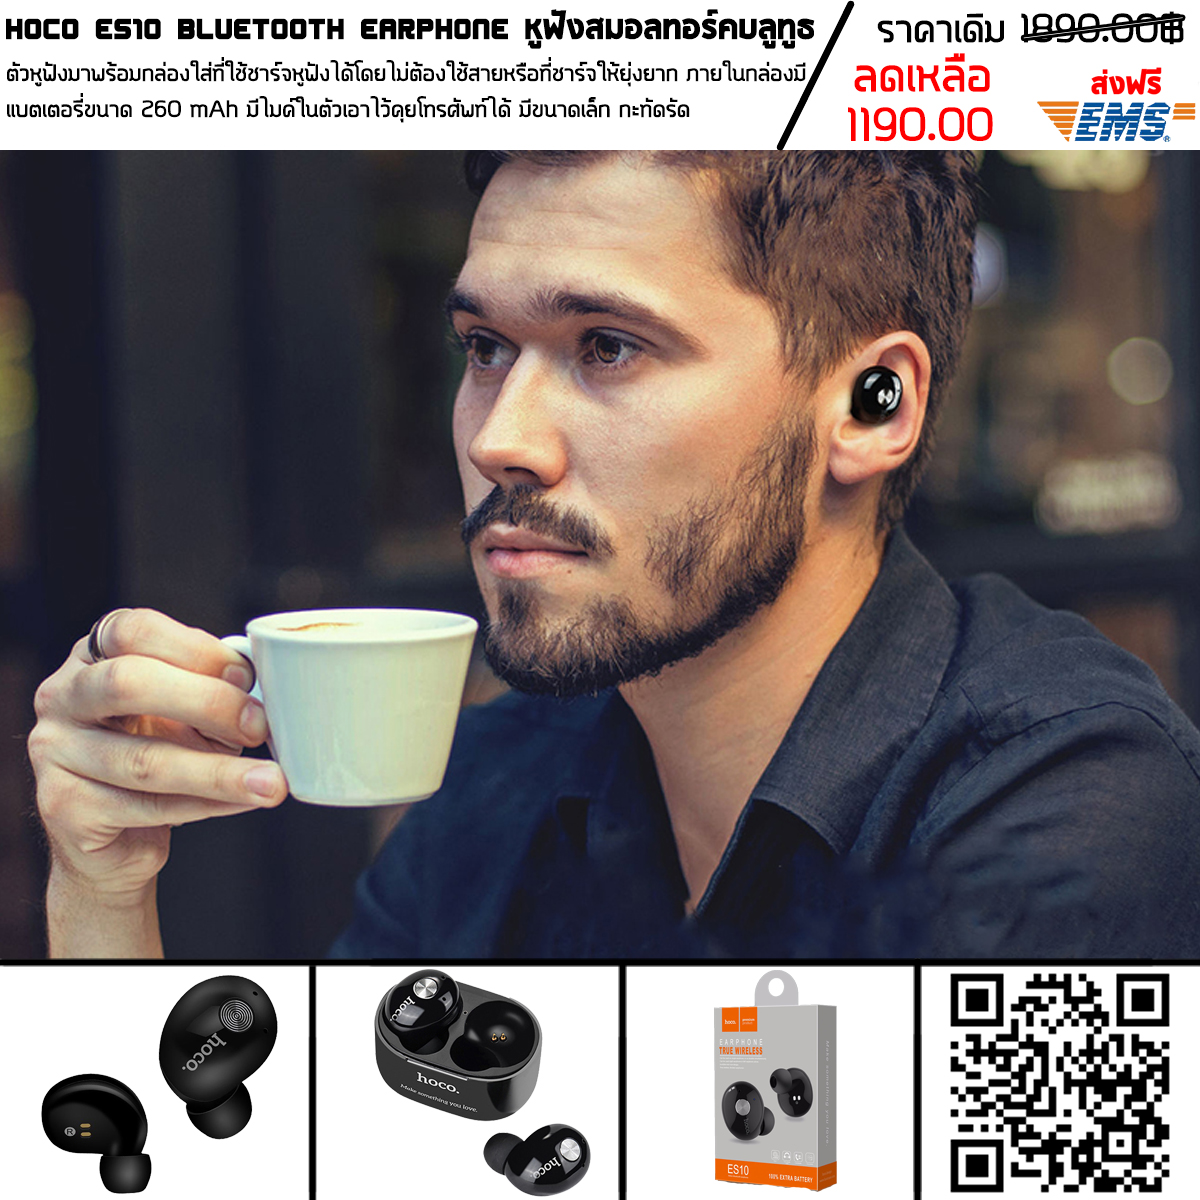 Hoco ES10 Bluetooth Earphone